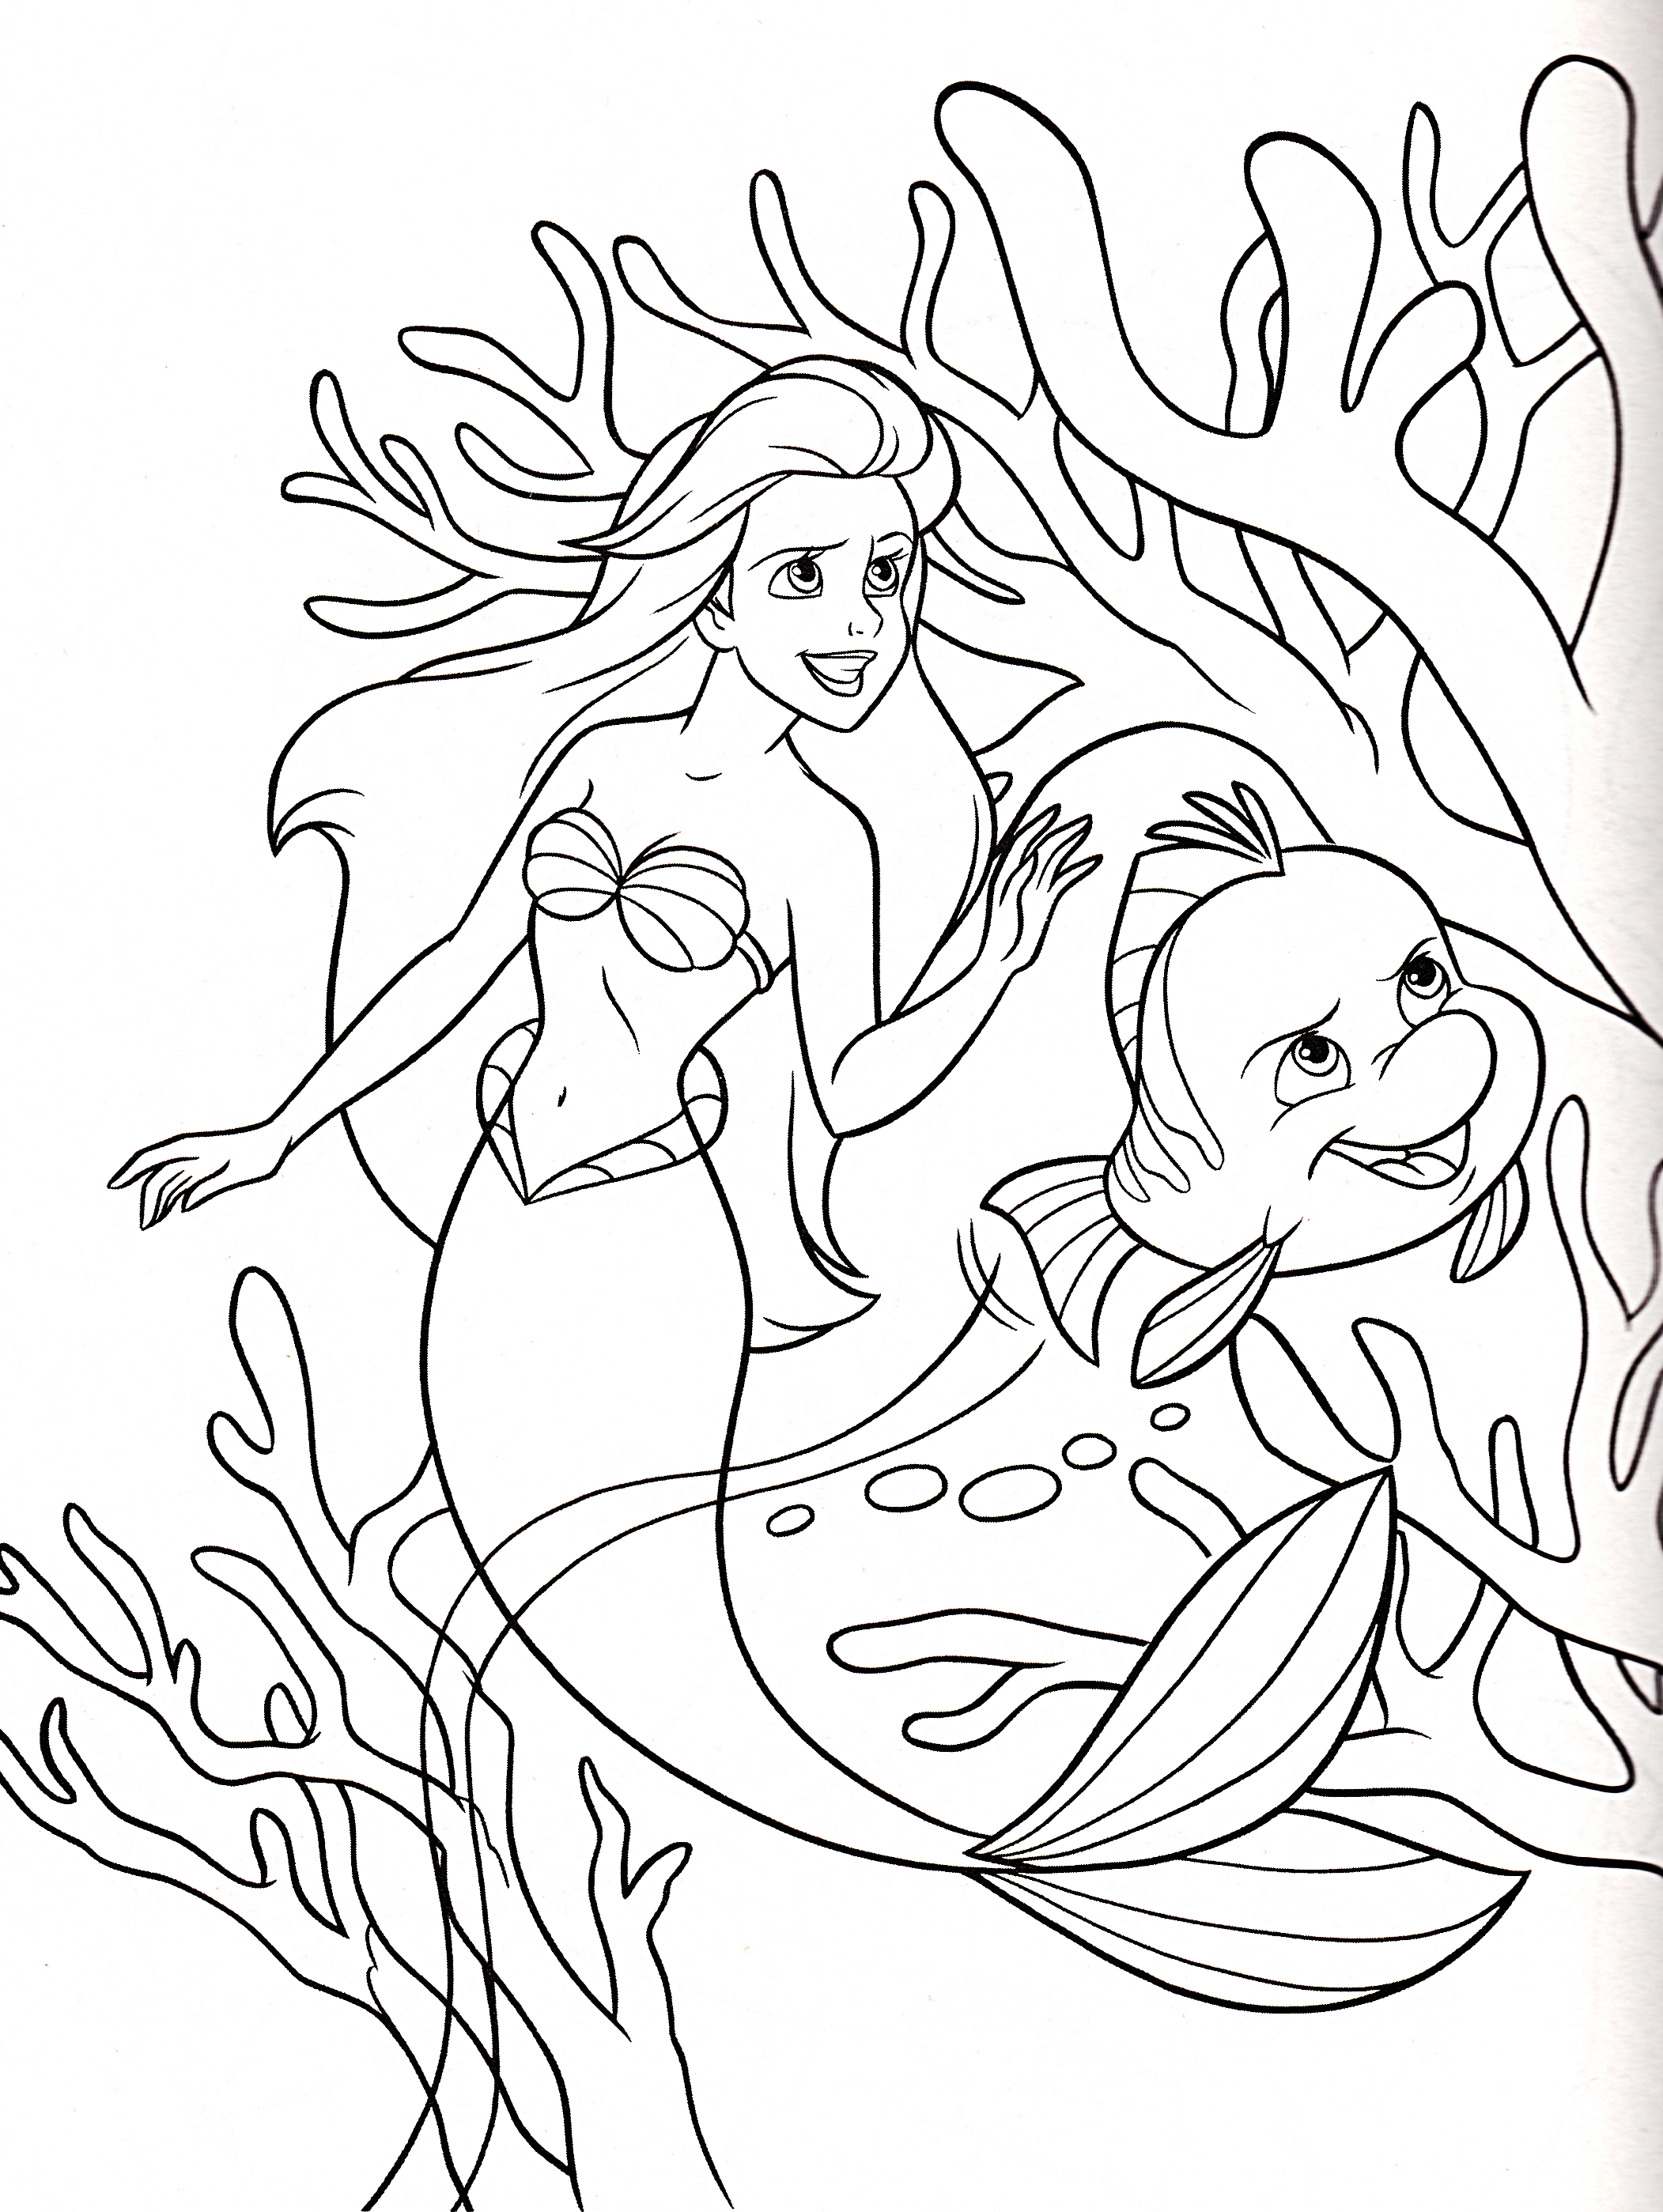 Walt Disney Coloring Pages - Princess Ariel & cá bơn, bồ câu